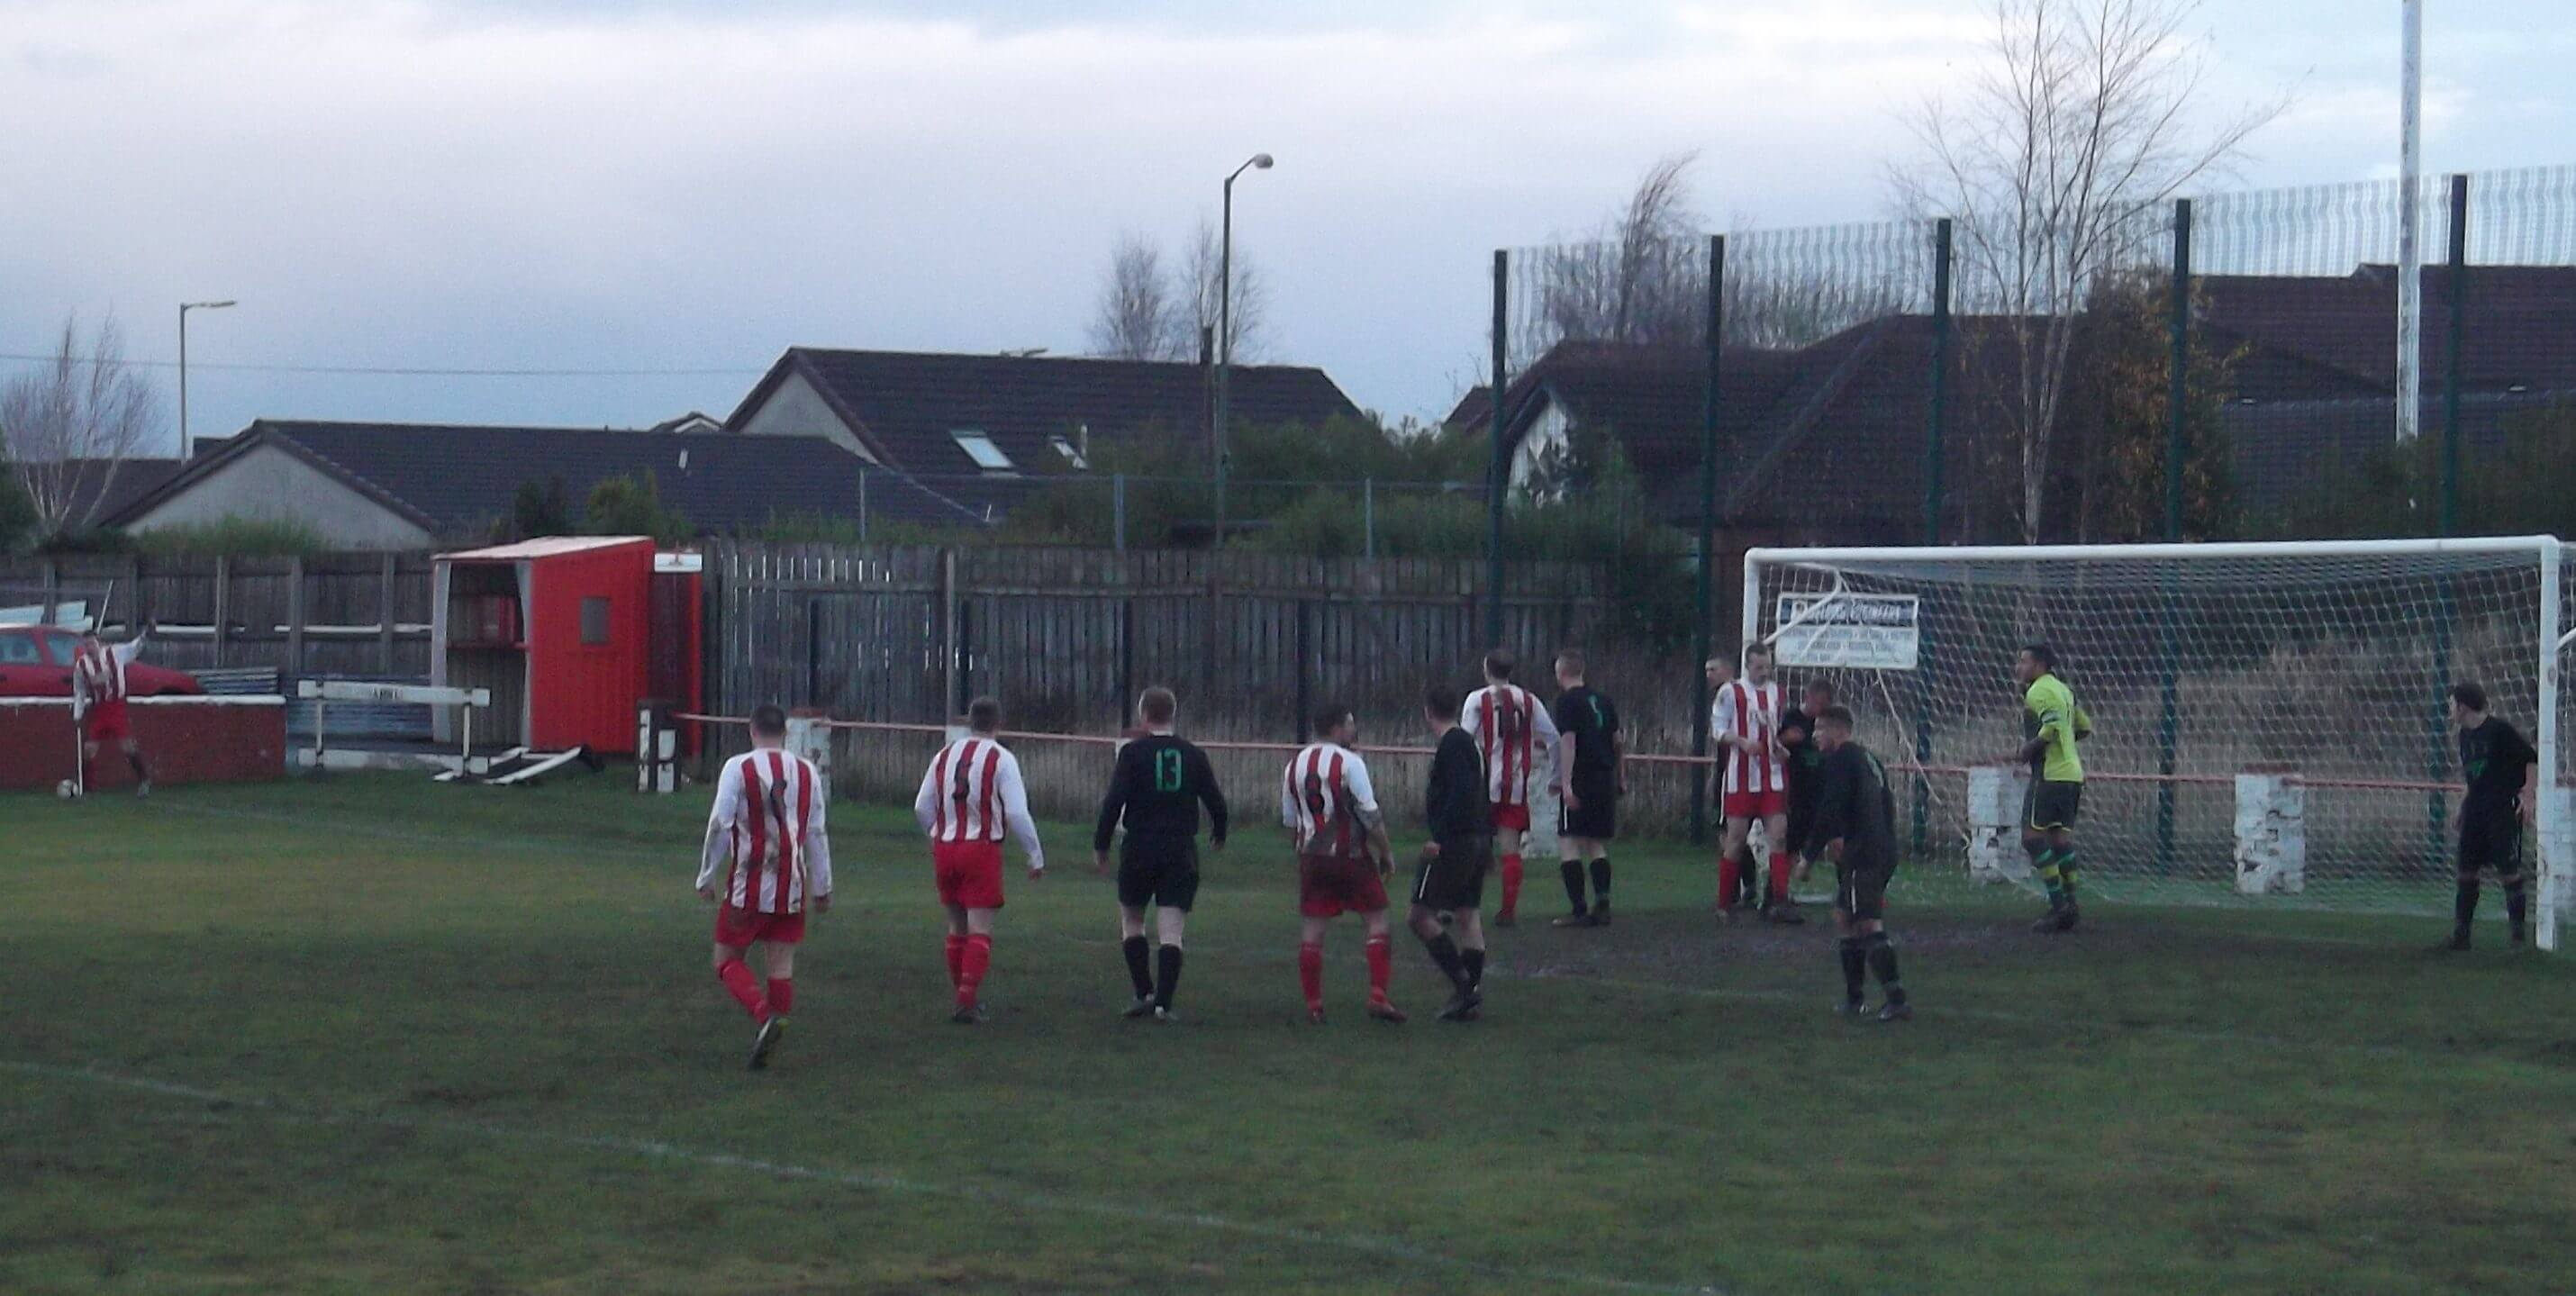 Larkhall Thistle v St Roch's 4 - Thistle get a corner late in the match